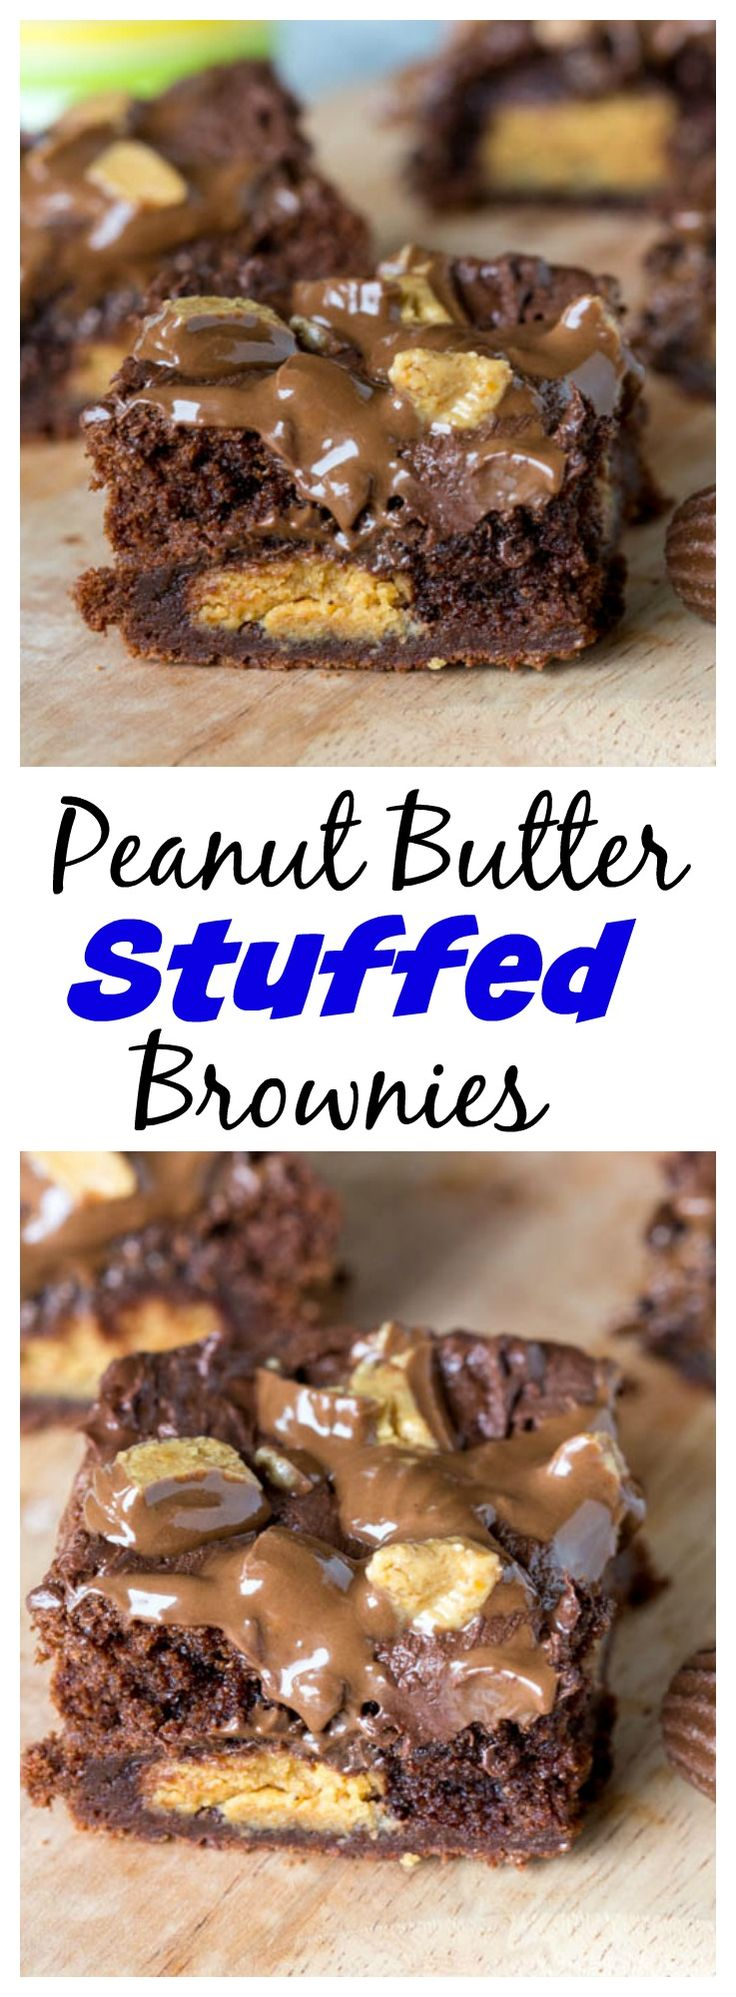 Peanut Butter Stuffed Brownies – rich, fudge brownies that are stuffed with peanut butter cups, topped with melted chocolate and more peanut butter cups! #TheBeautyAddict